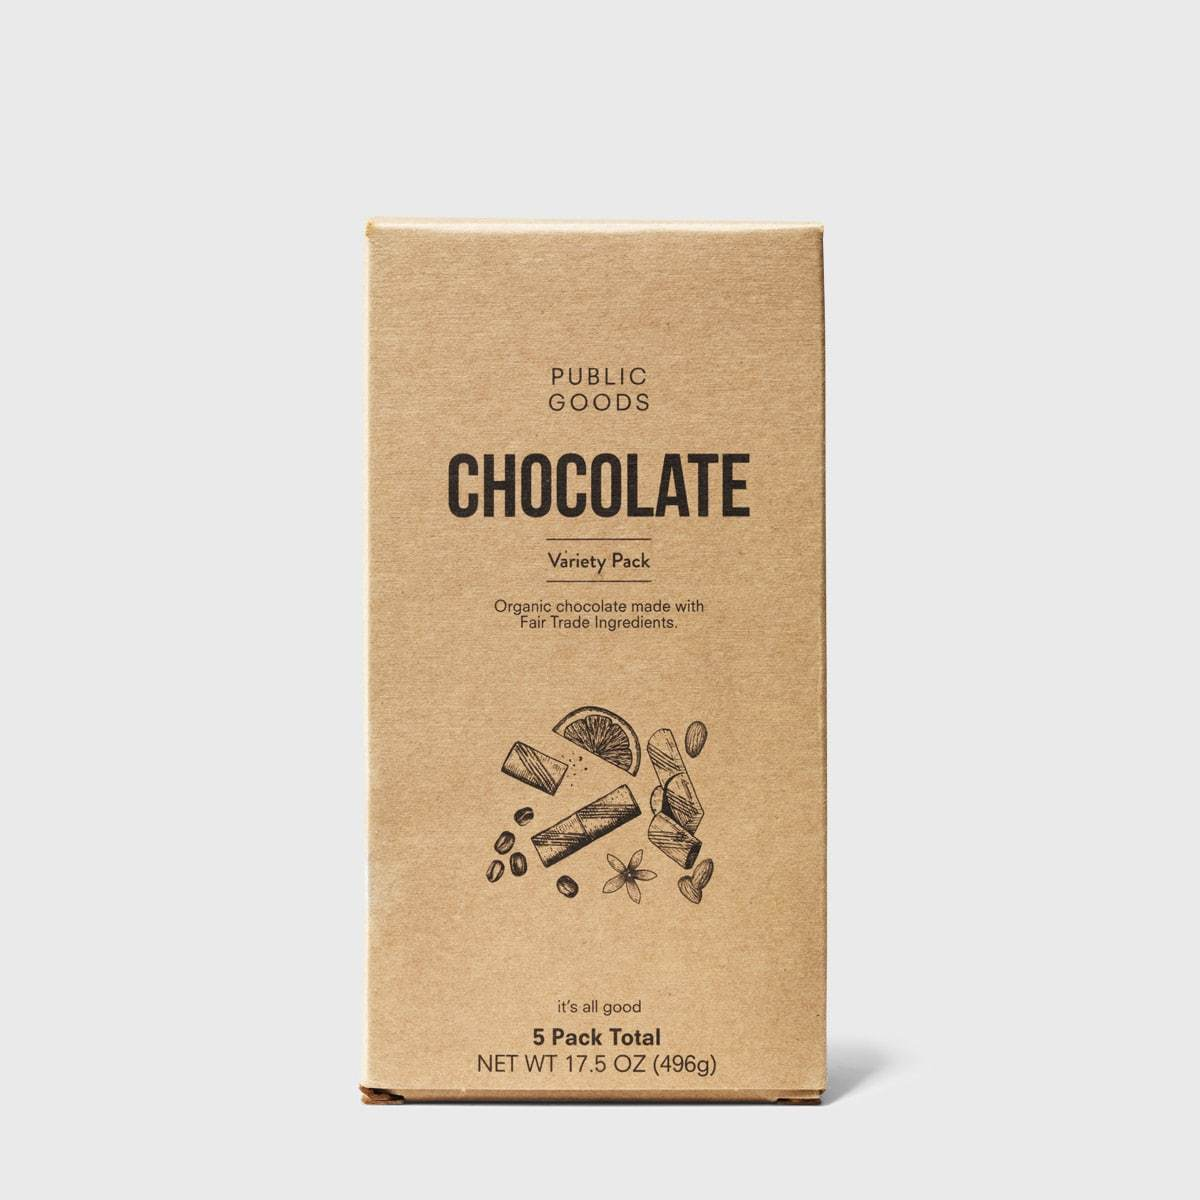 chocolate variety pack from public goods